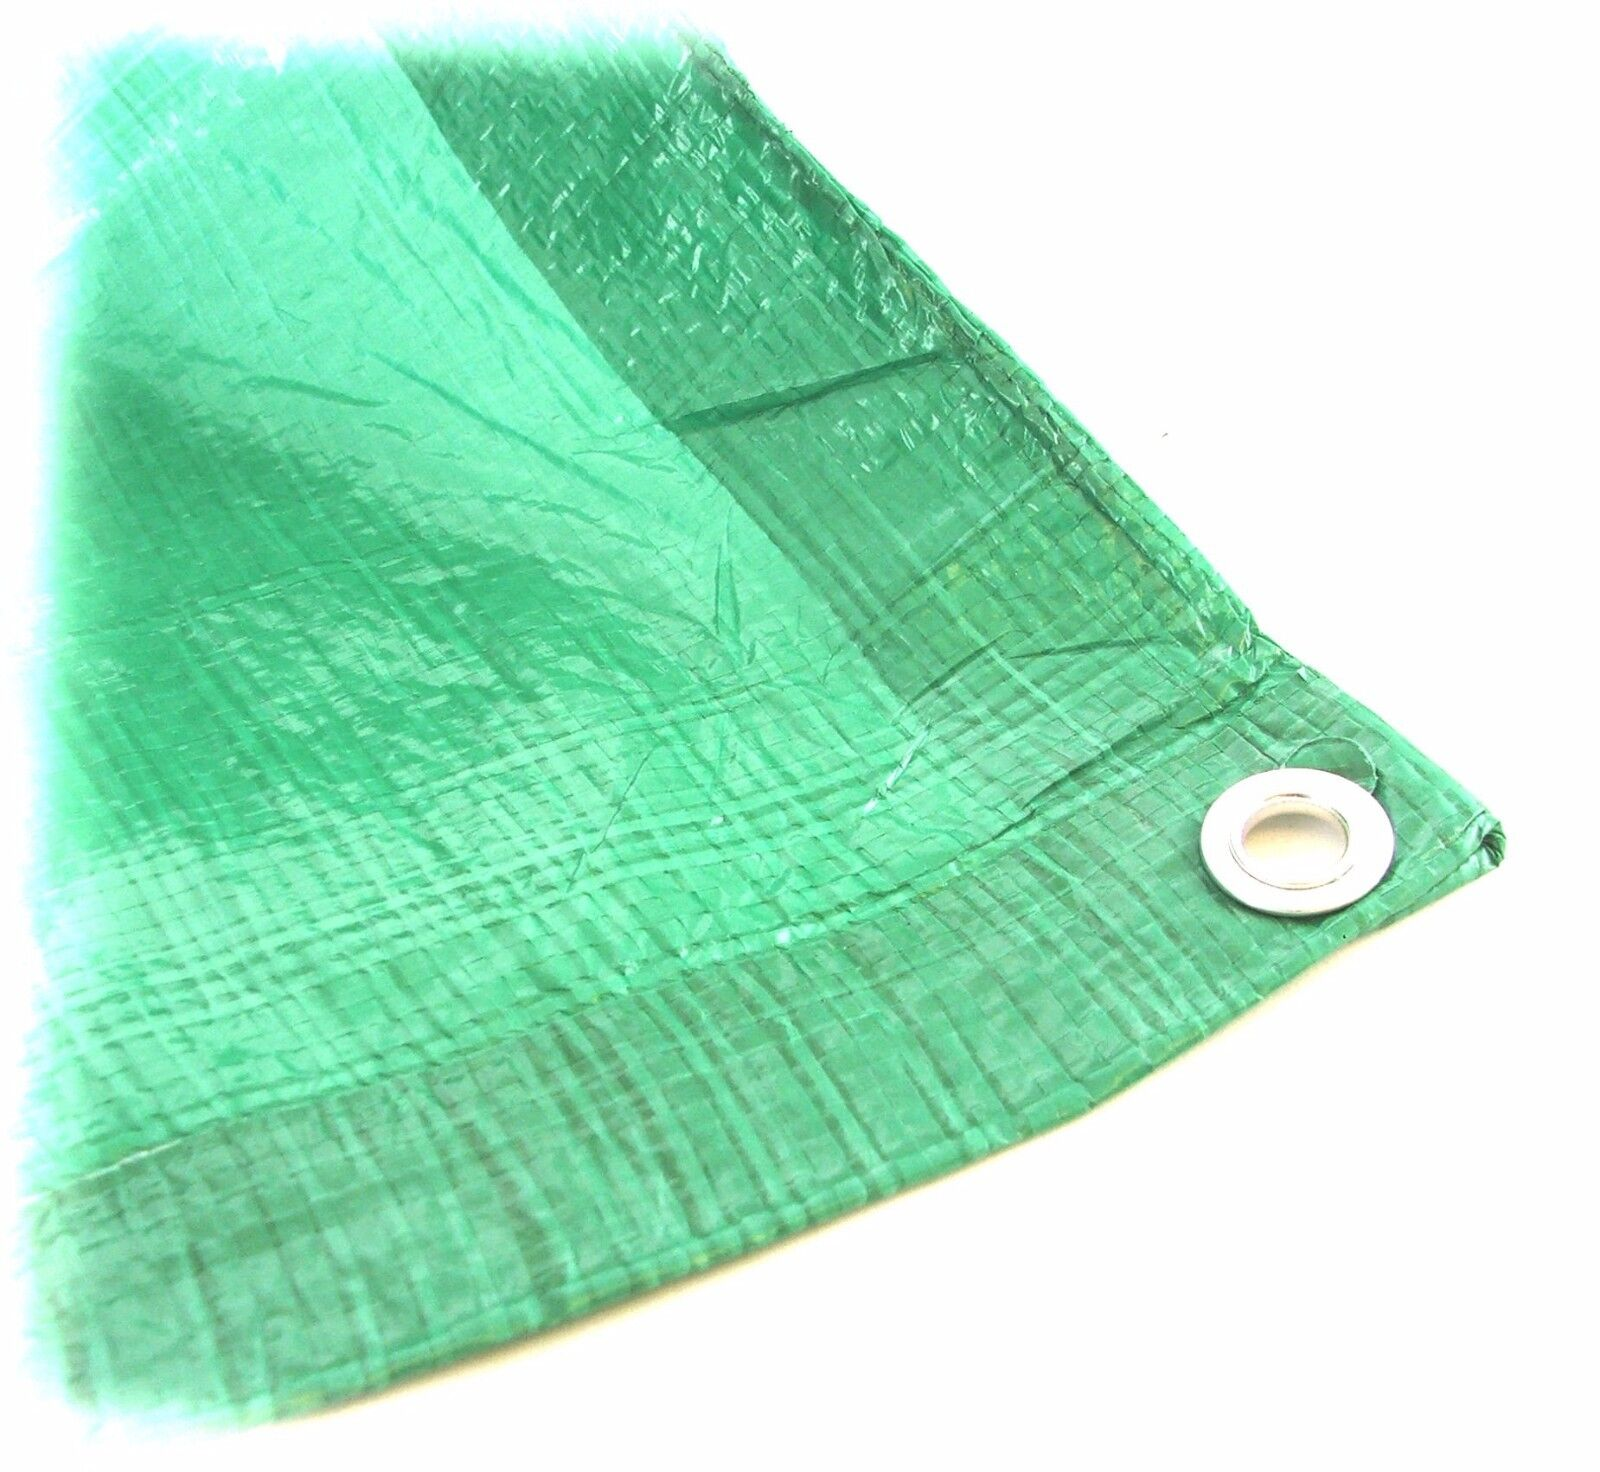 Strong 2.7m x 3.5m Green Waterproof Polyethylene Woven Tarpaulin ground sheet